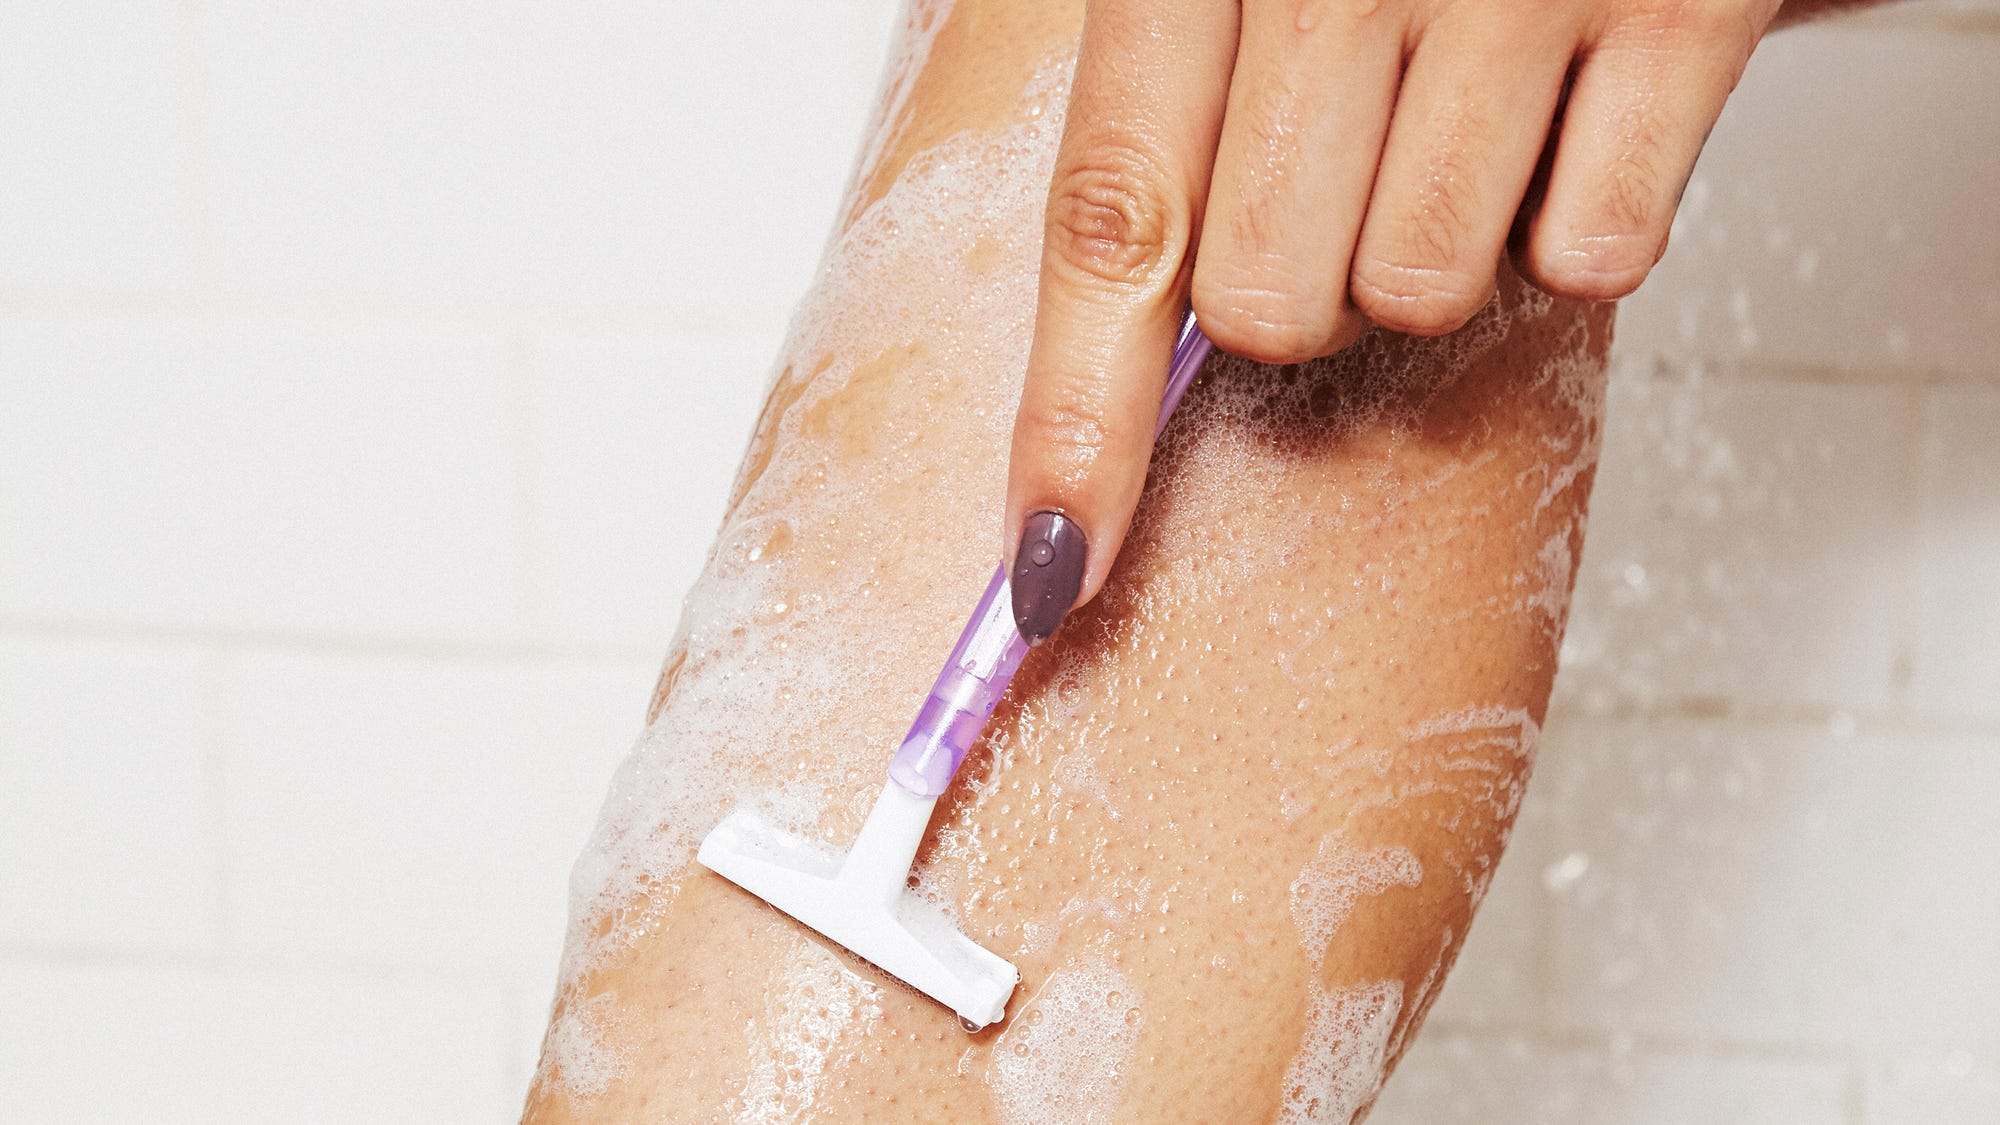 Hair removal reviewed and ranked - Hair Removal Reviewed And Ranked 50